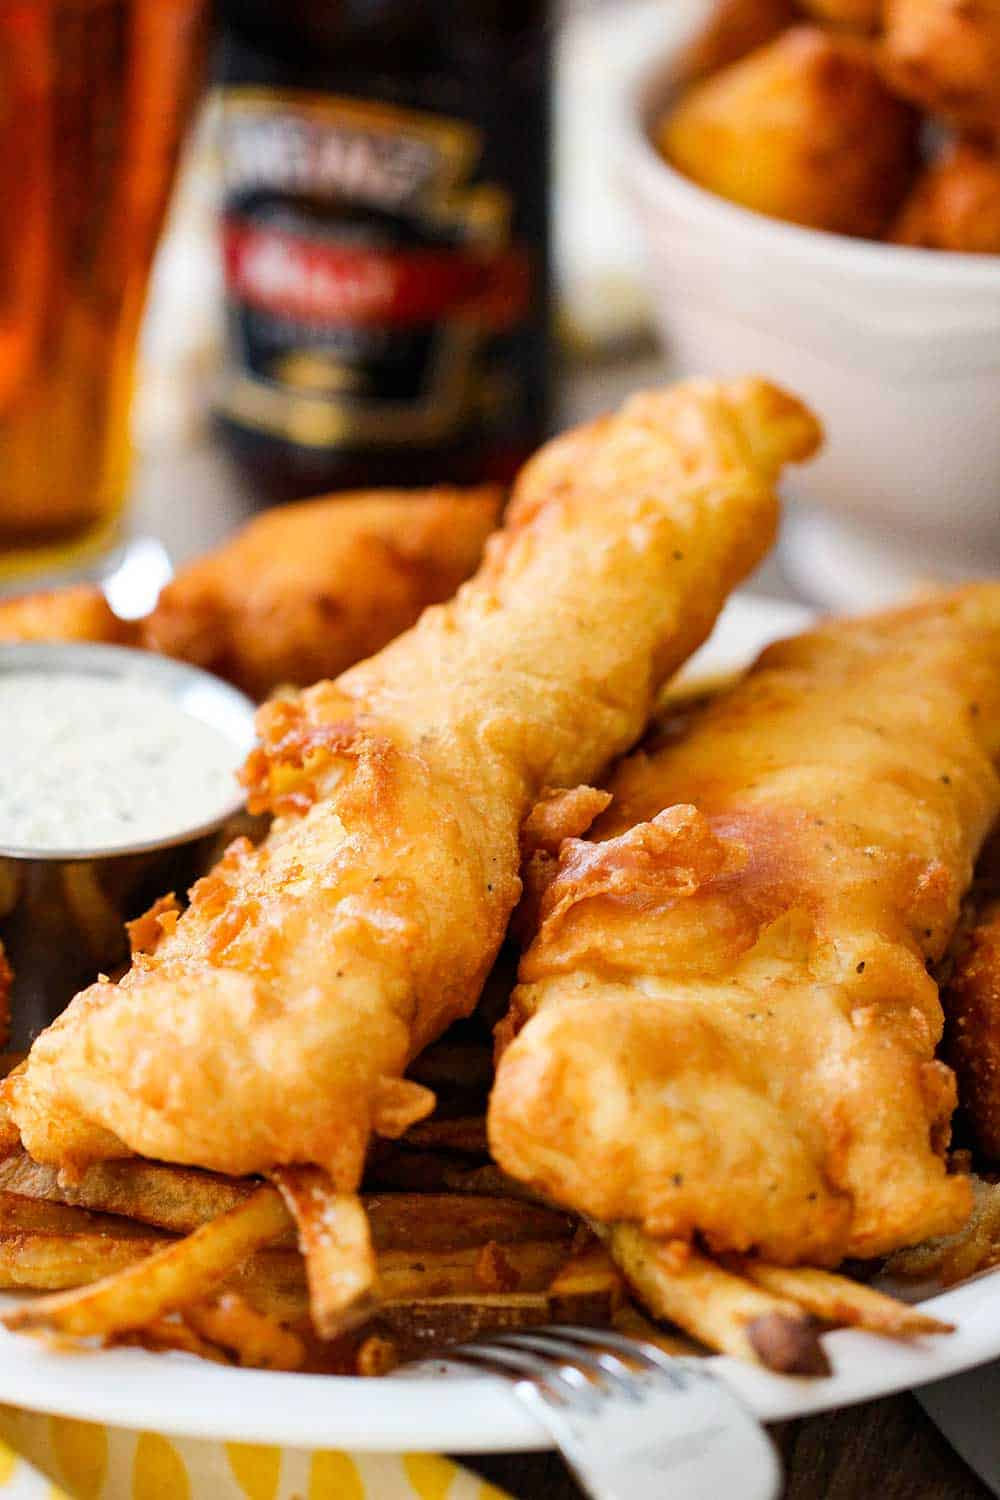 Recette Fish And Chips Jamie Oliver : recette, chips, jamie, oliver, Classic, Chips, Recipe